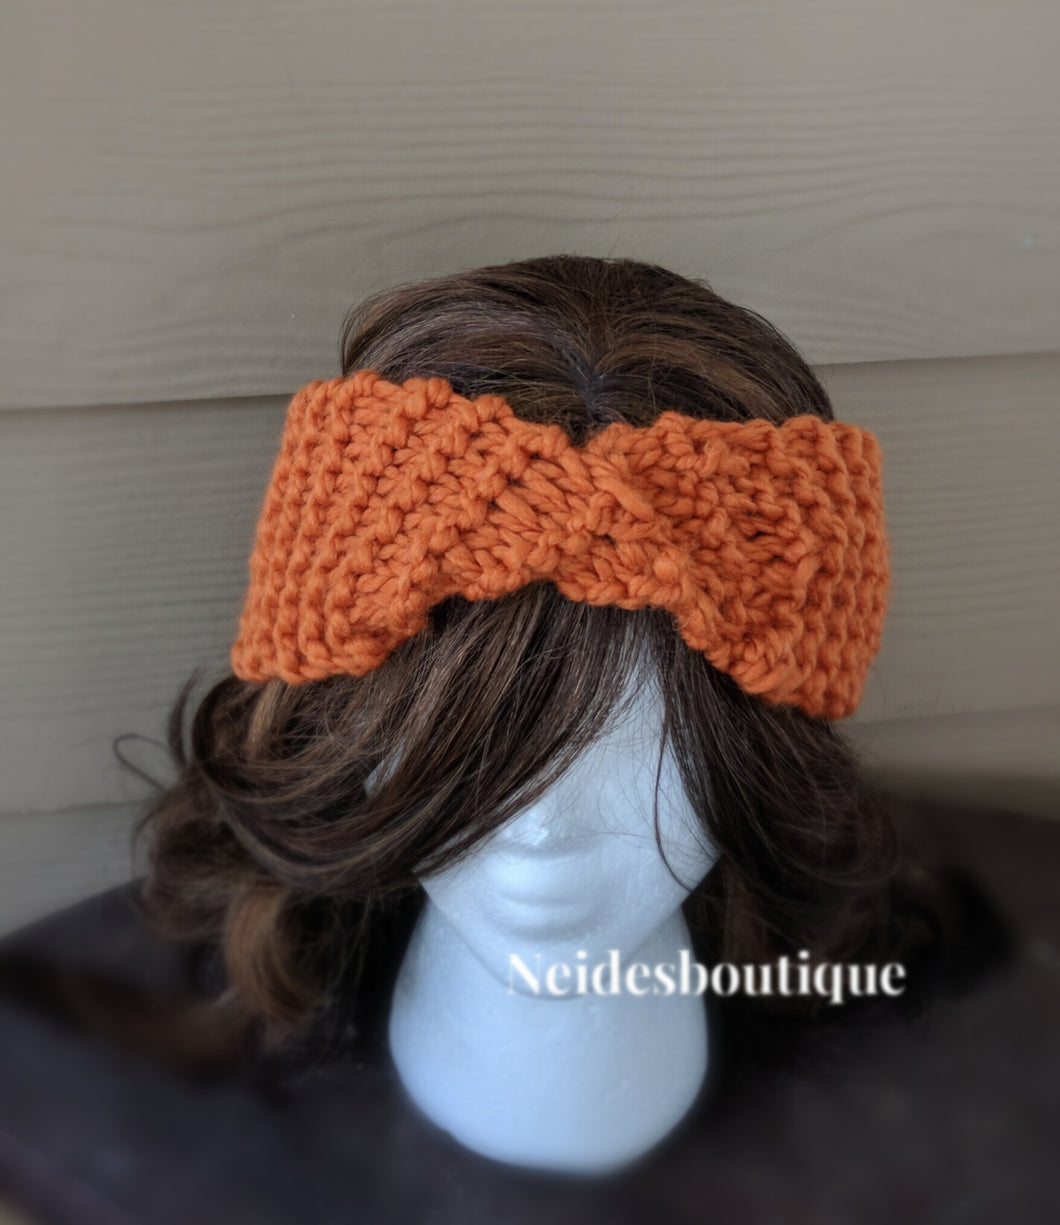 Knit earwarmer knit headband pumpkin spice